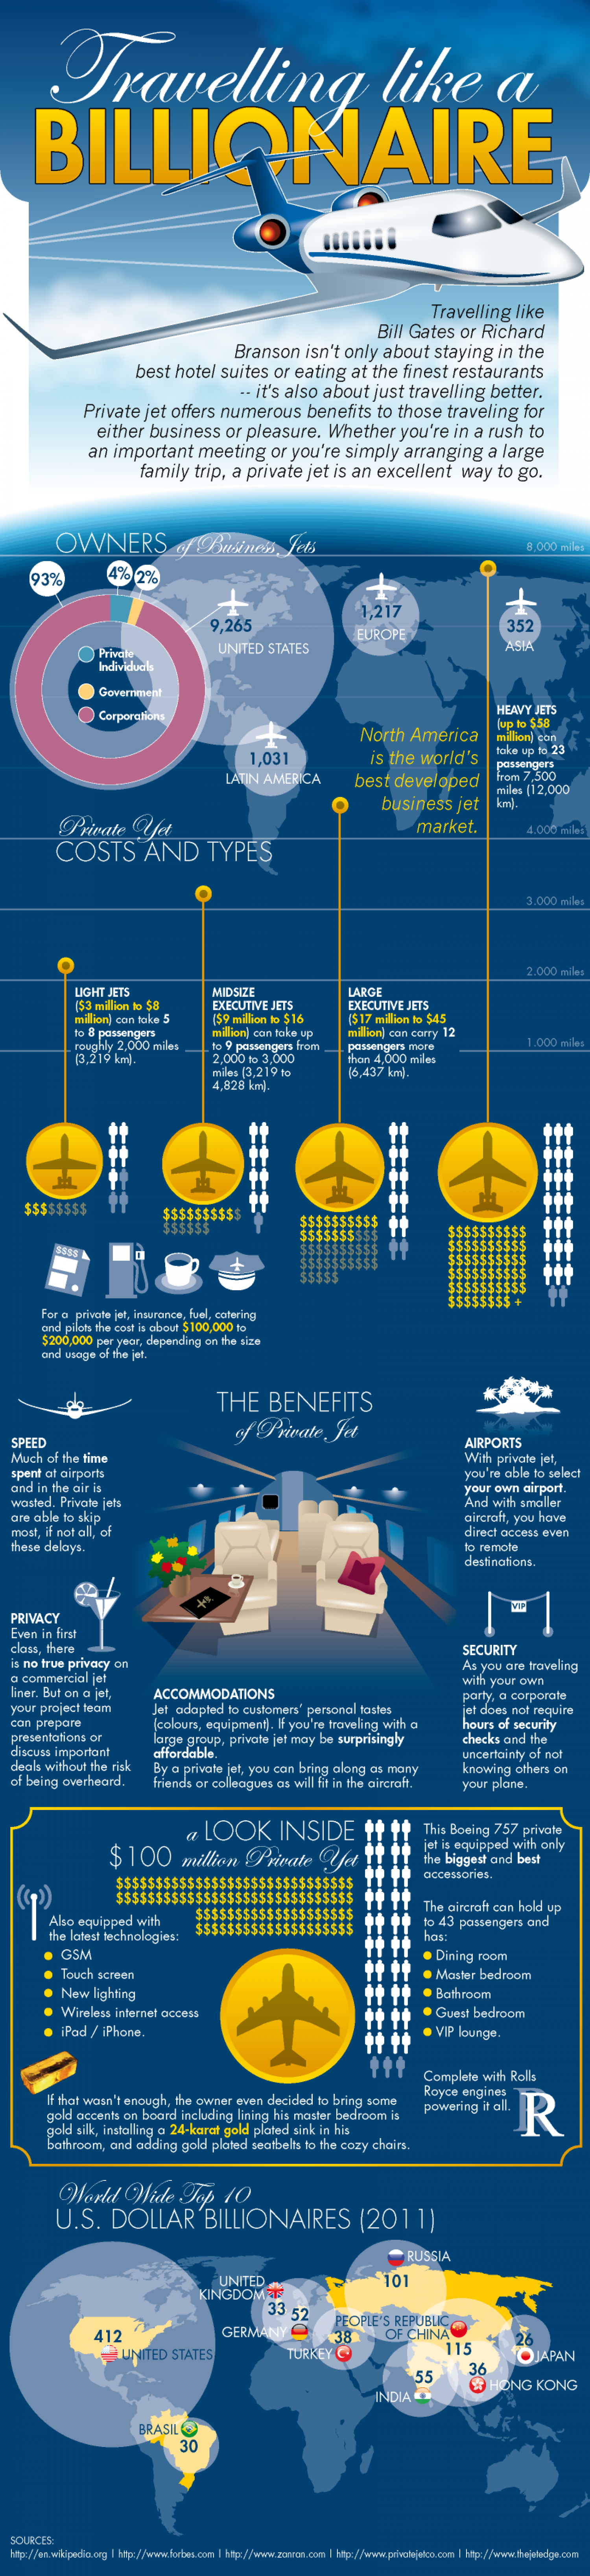 Charter a Business Jet Like A Billionaire Infographic